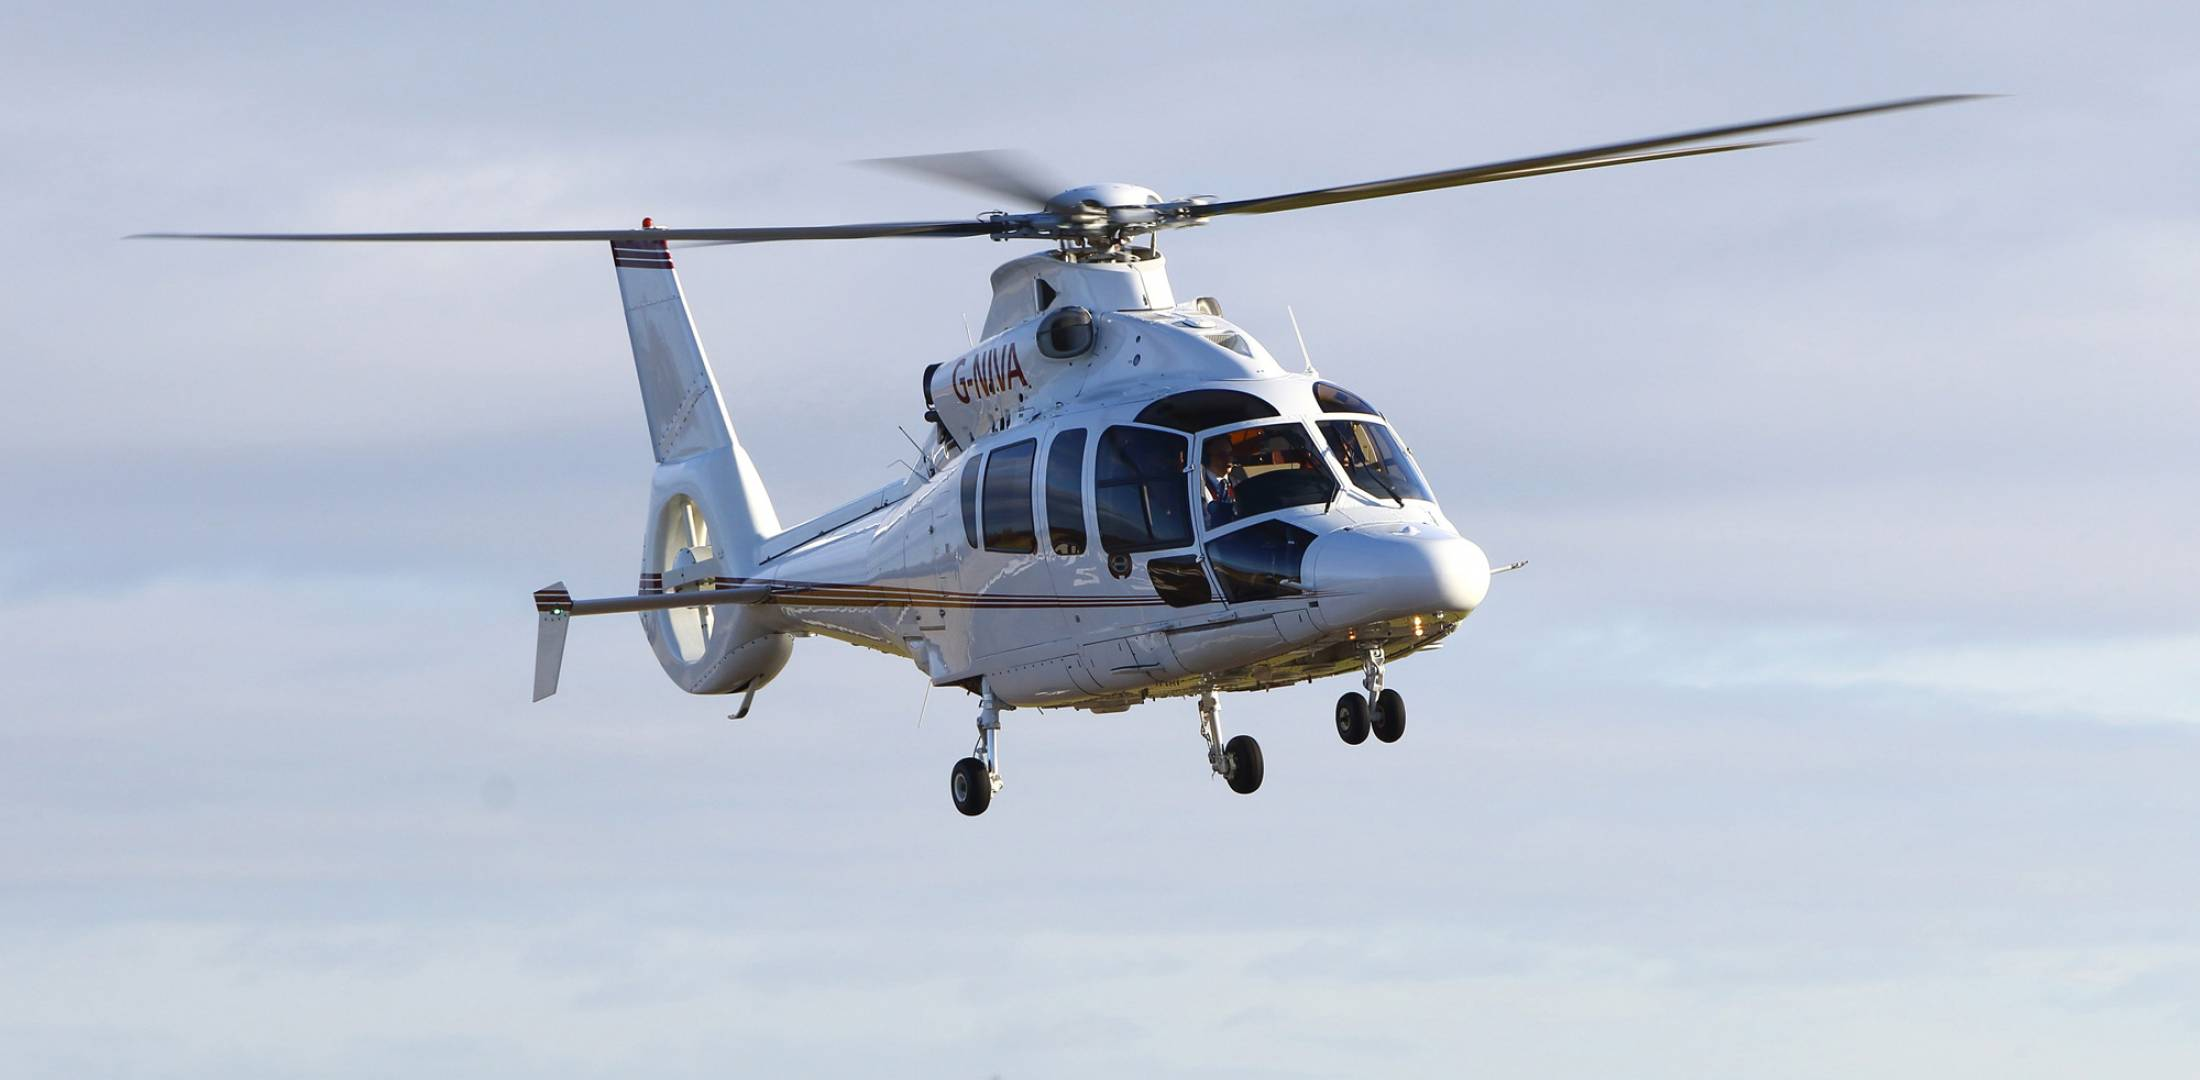 chinook with Luxaviation Helicopters Acquires Uk Operator Starspeed on Watch likewise American Bulldog in addition Luxaviation Helicopters Acquires Uk Operator Starspeed moreover History Making 1985 Honda Crx Si in addition Chinook Pass Summit Tipsoo Lake.